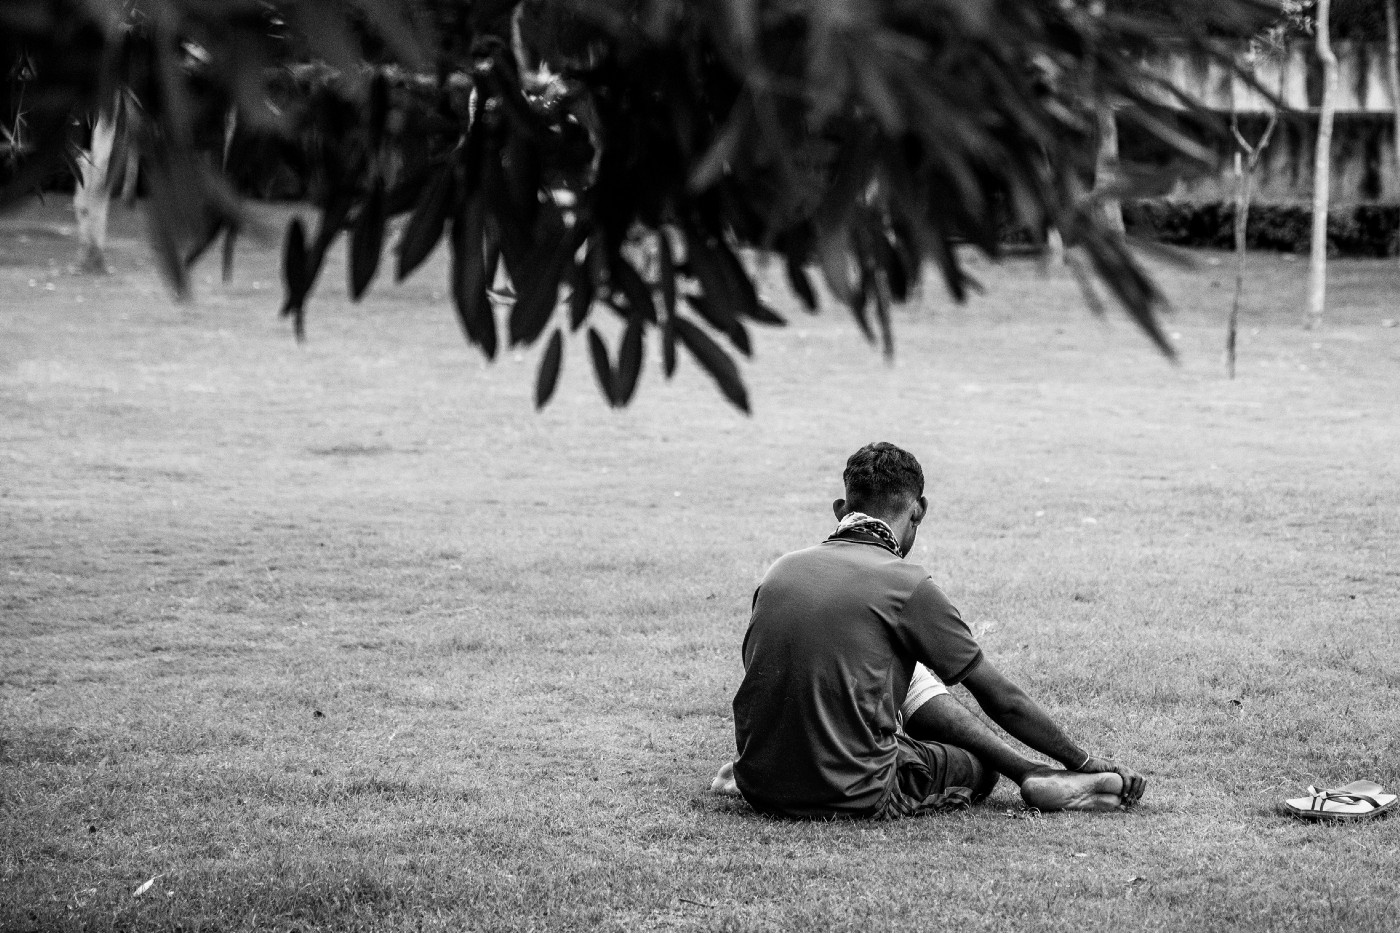 Man sitting alone, posture indicates he's tired or sad.